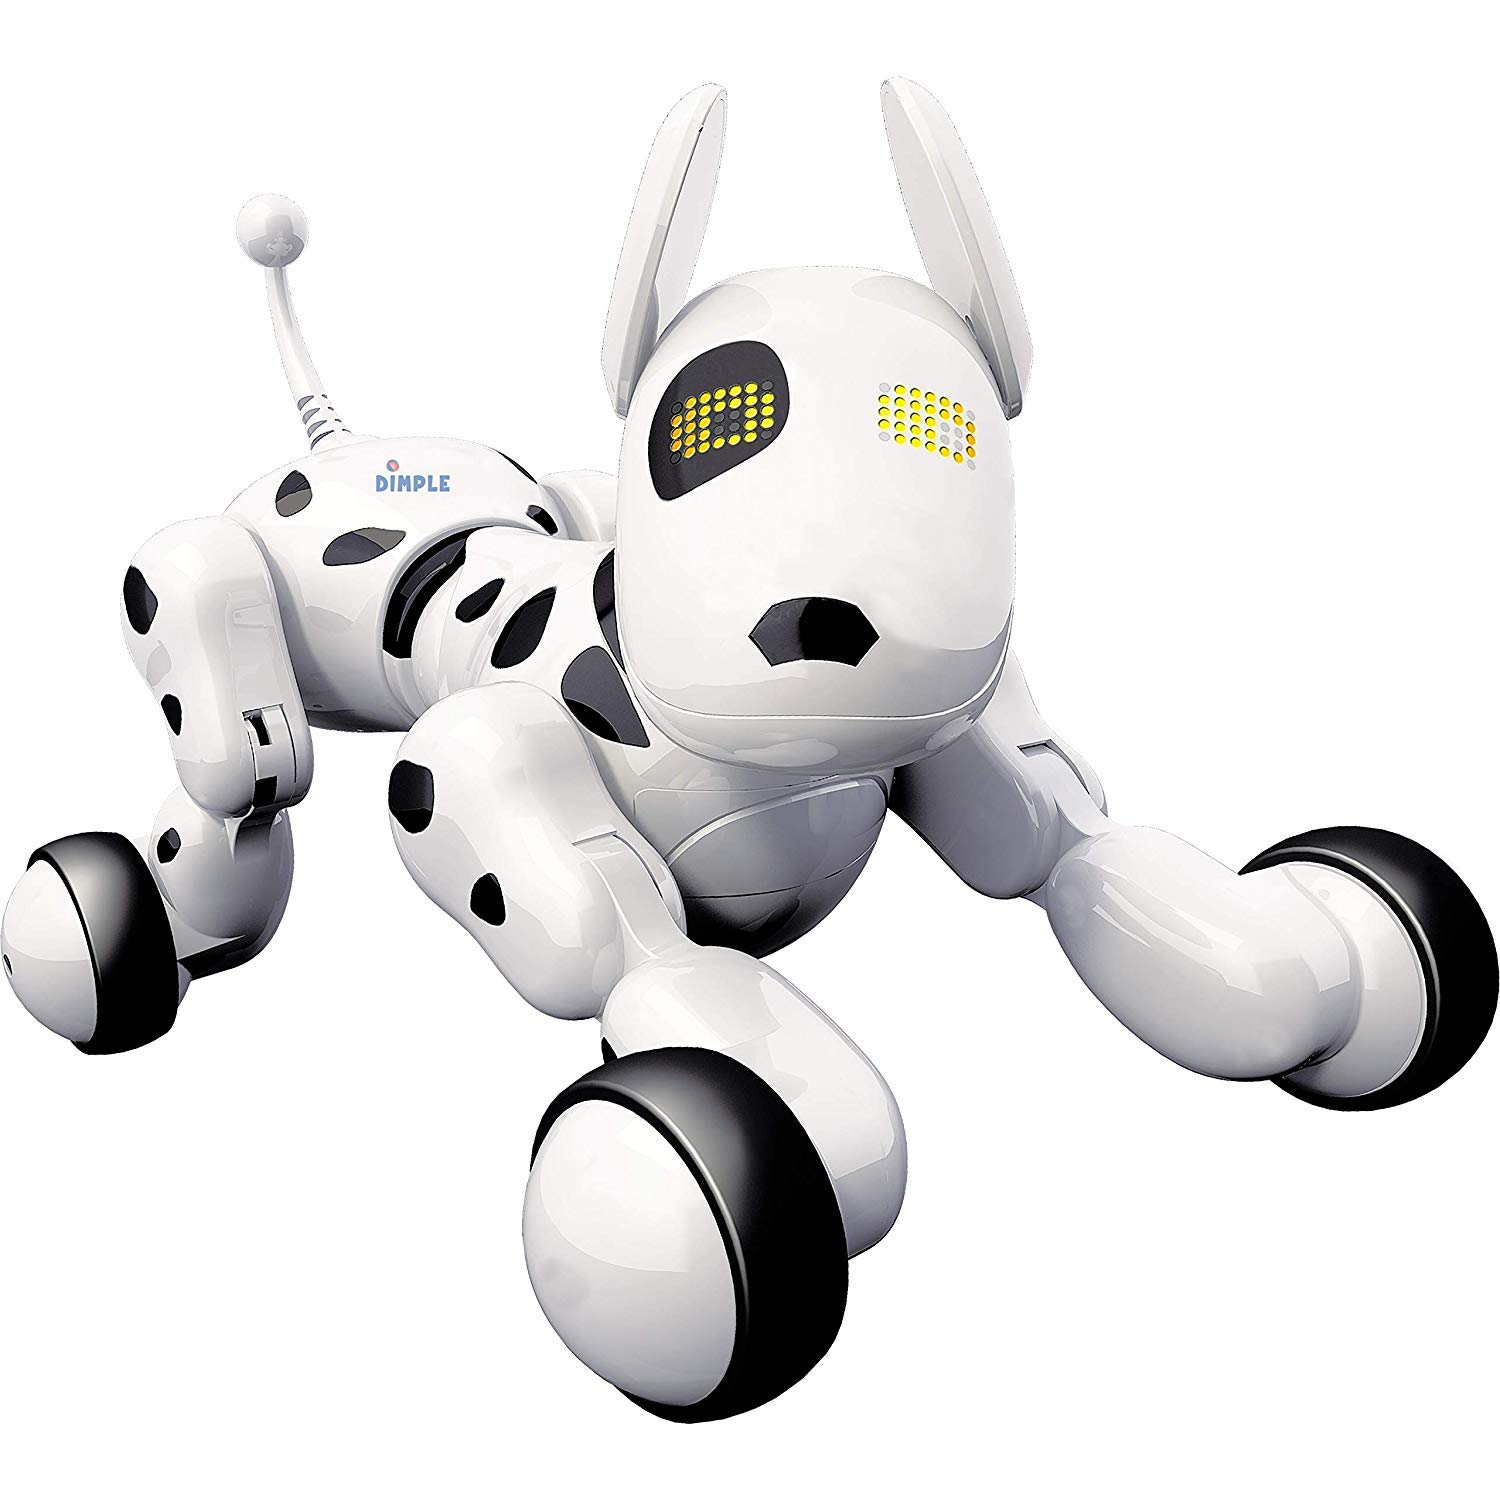 Dimple Wireless Remote Control Robot Puppy